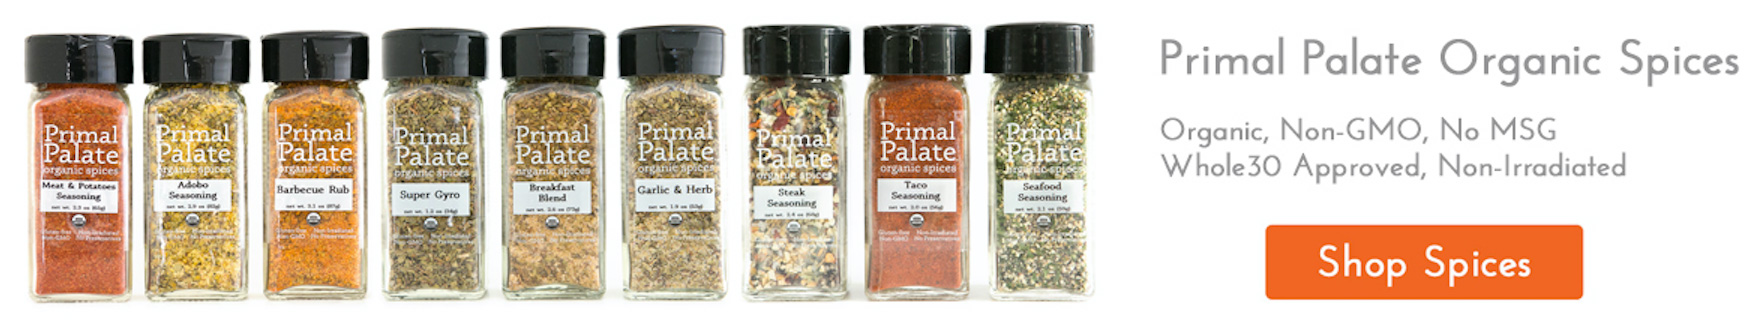 shop Primal Palate spices